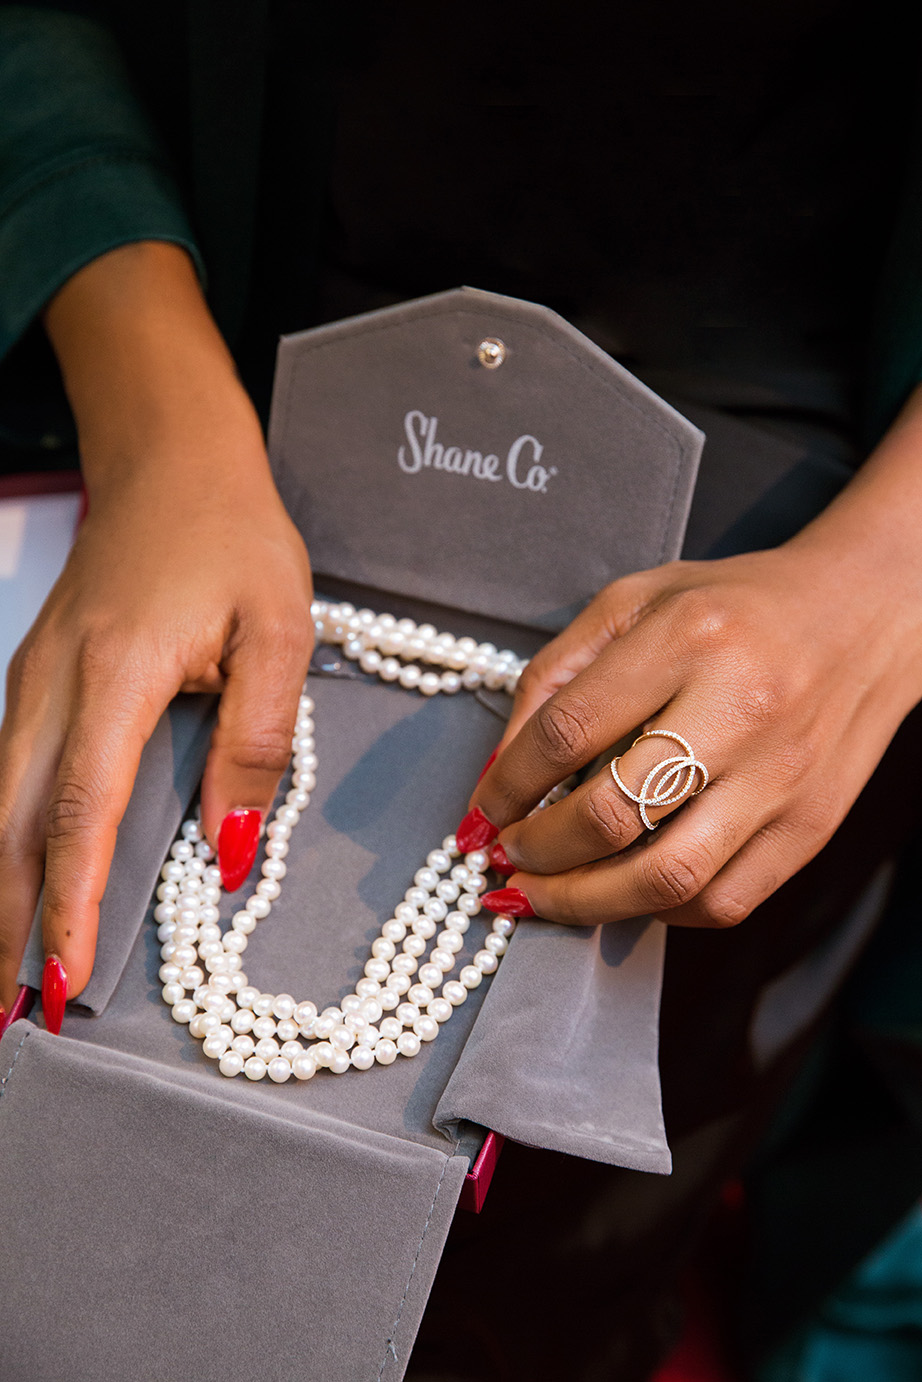 Shane Co jewelry, holiday gifts, pearl necklace, www.jadore-fashion.com